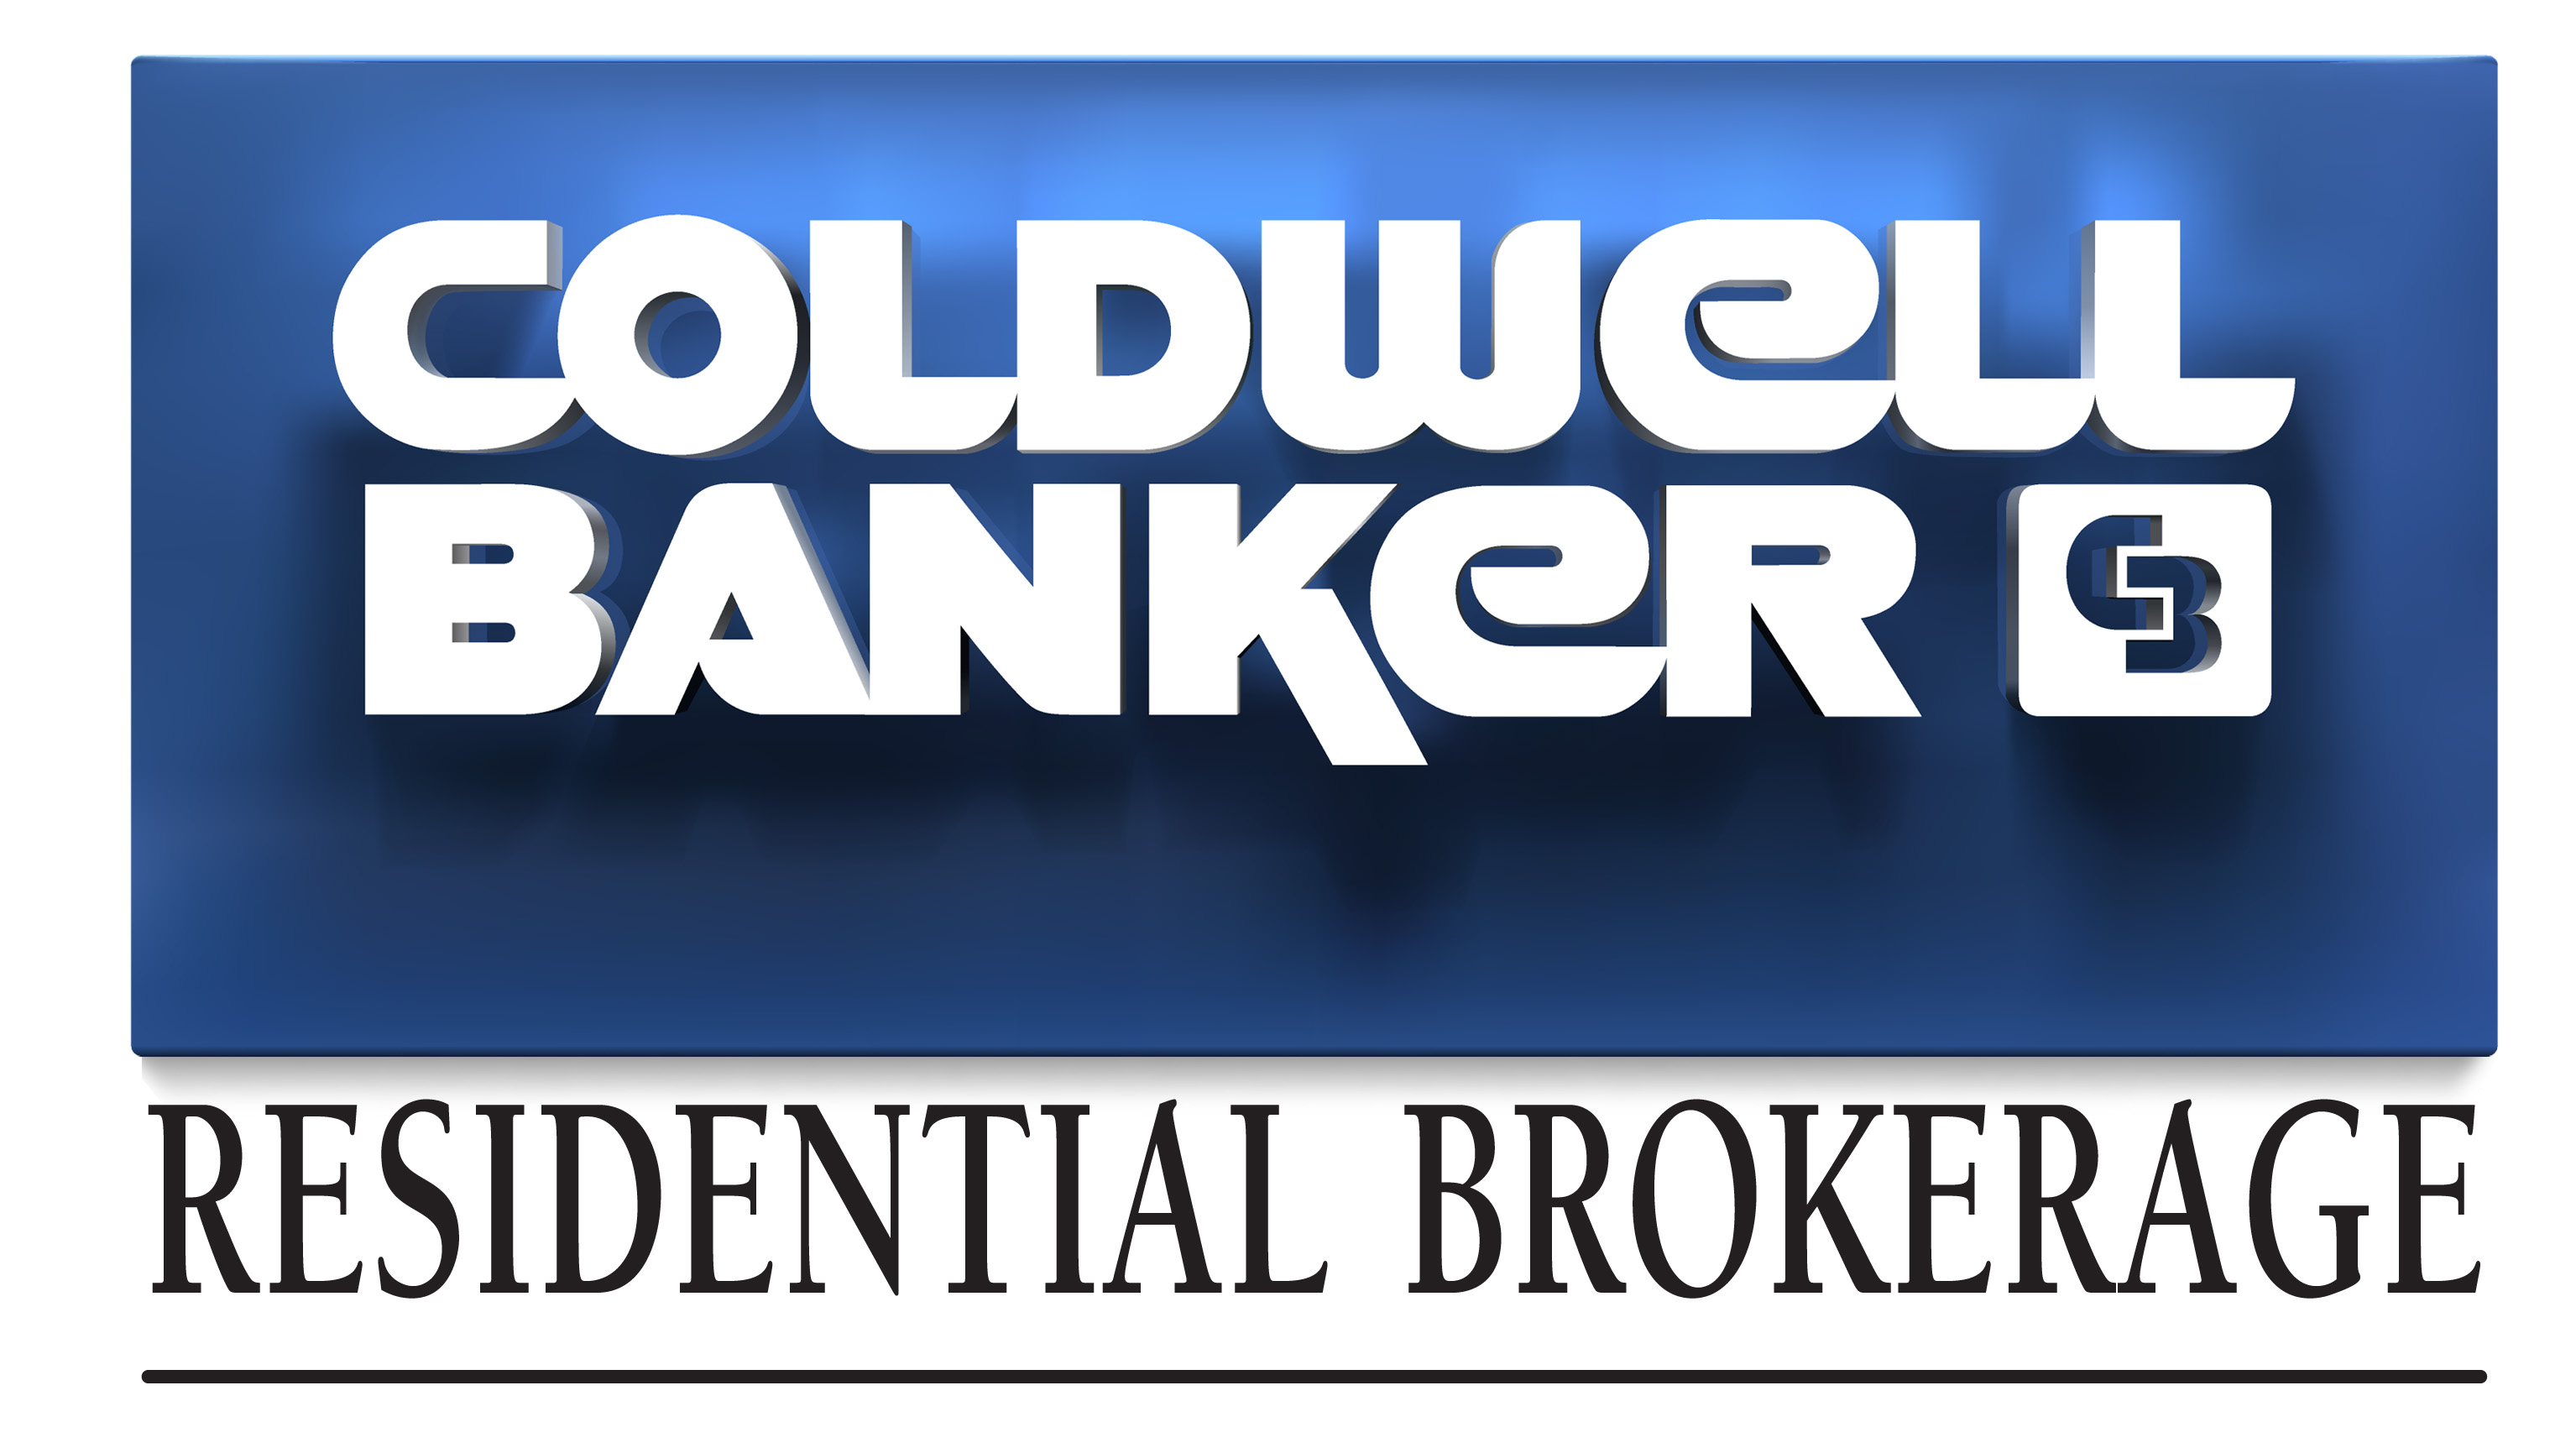 Coldwell Bangker Residential Brokerage Badge